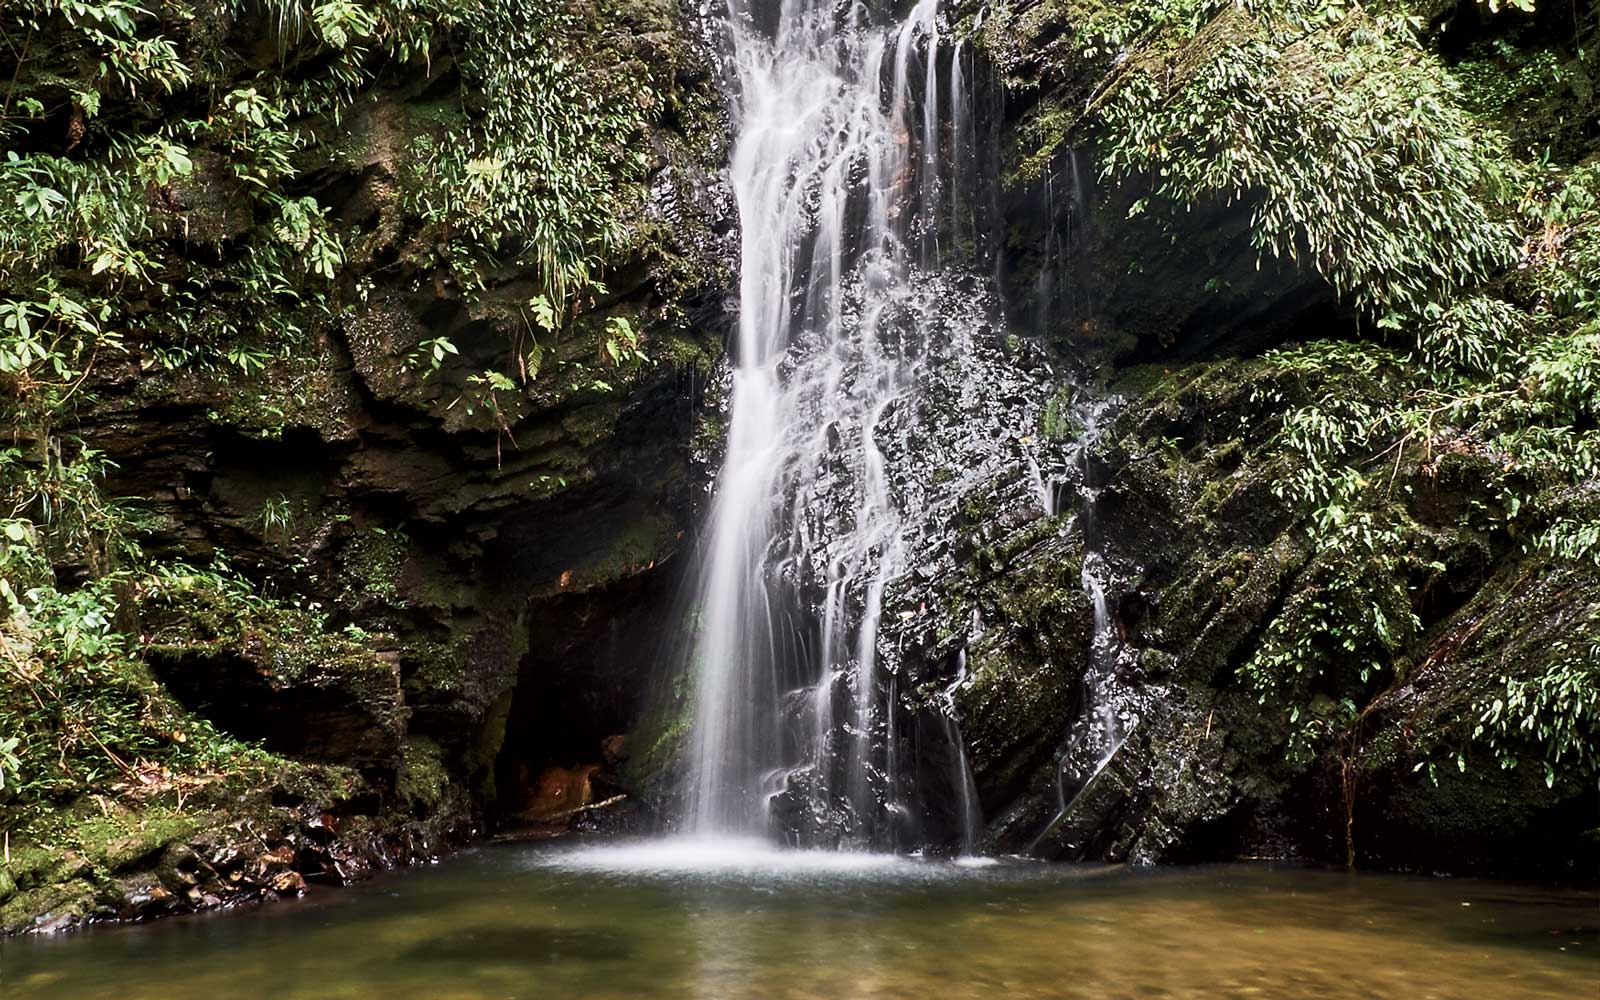 A waterfall in Yanbaru Forest, Okinawa, Japan